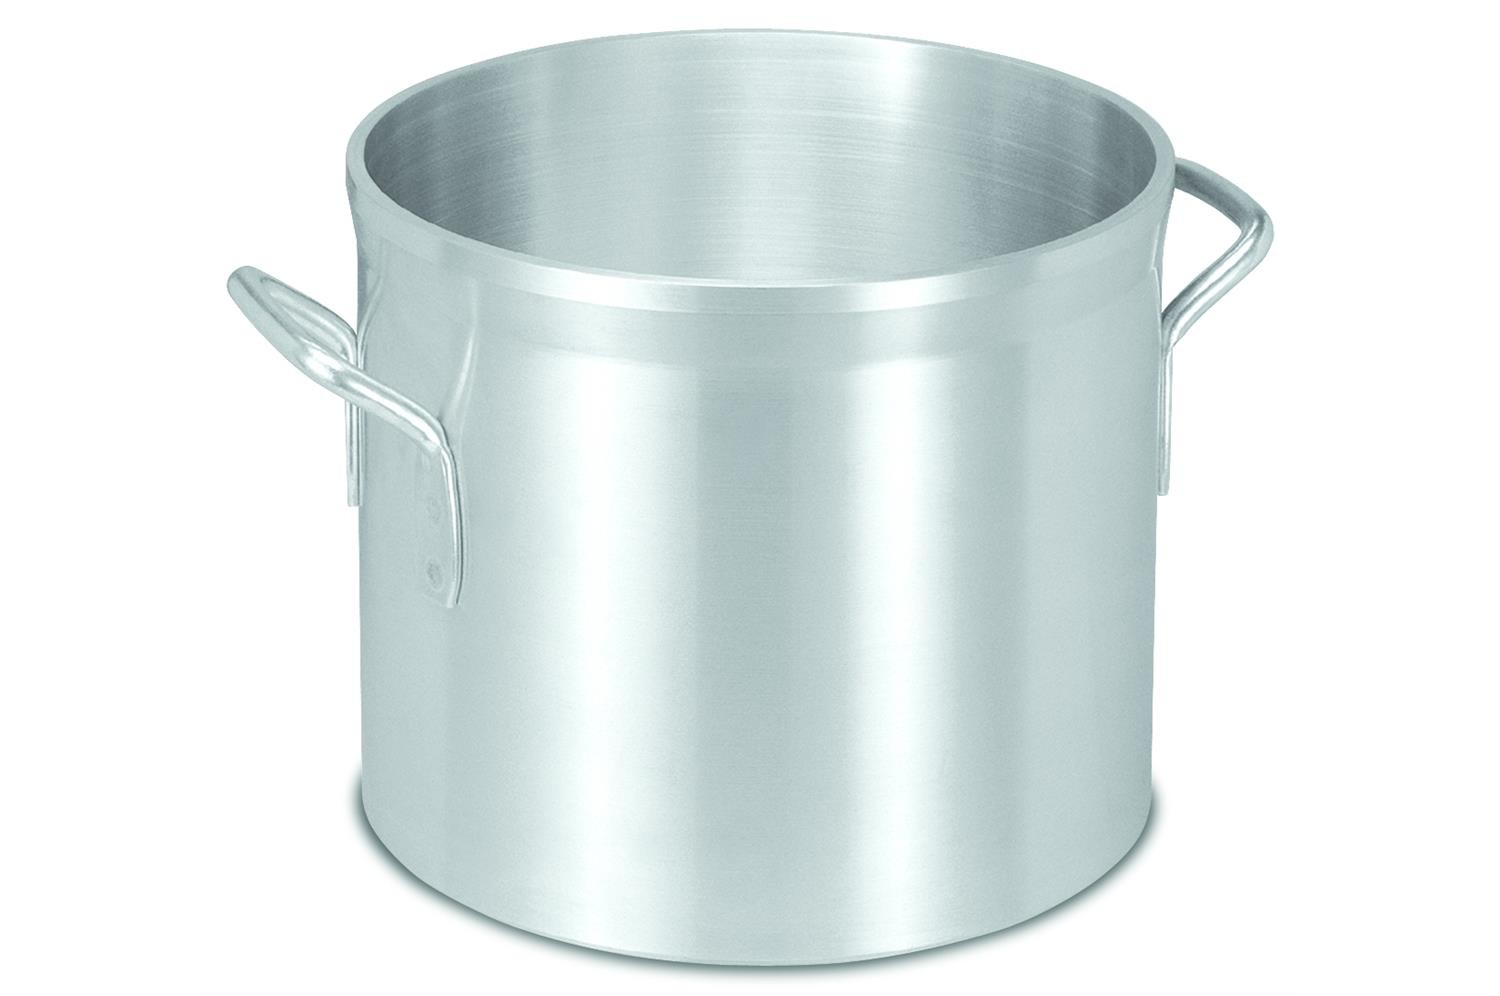 Vollrath 68408 Wear-Ever Classic Select Heavy Duty Aluminum Sauce Pot 8.5 Qt.